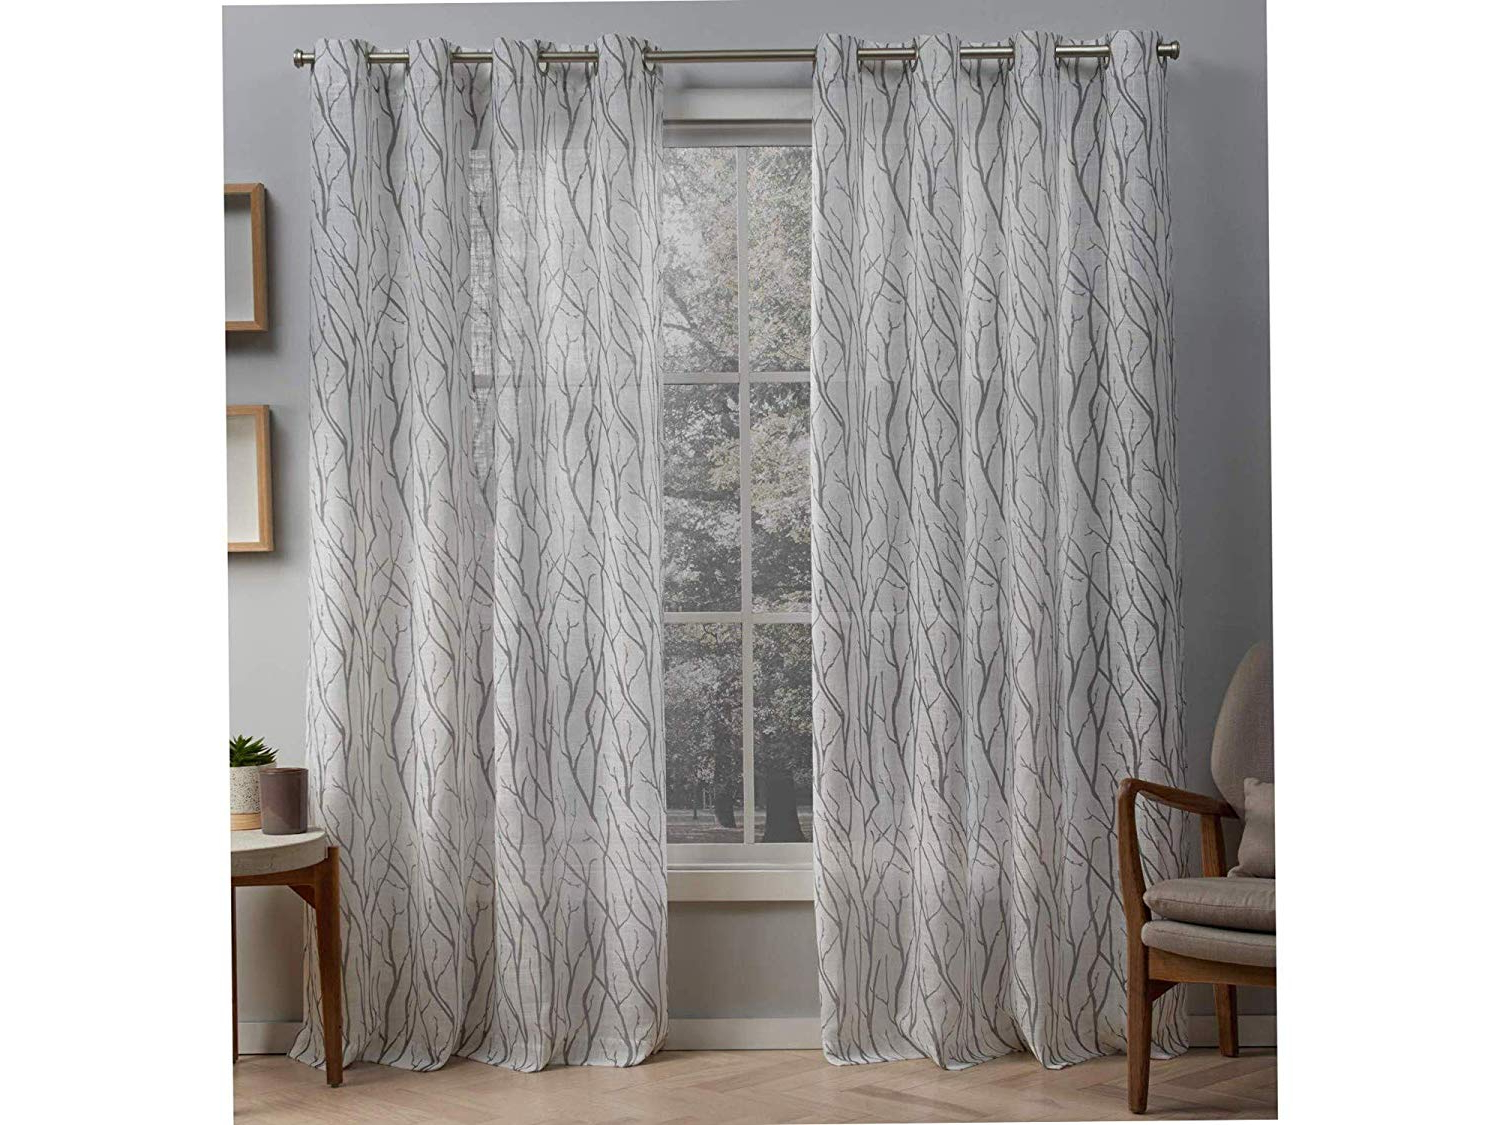 2021 Oakdale Textured Linen Sheer Grommet Top Curtain Panel Pairs In Amazon: Еxclusivе Hоmе Curtаins Home Decor Oakdale Motif (View 1 of 20)